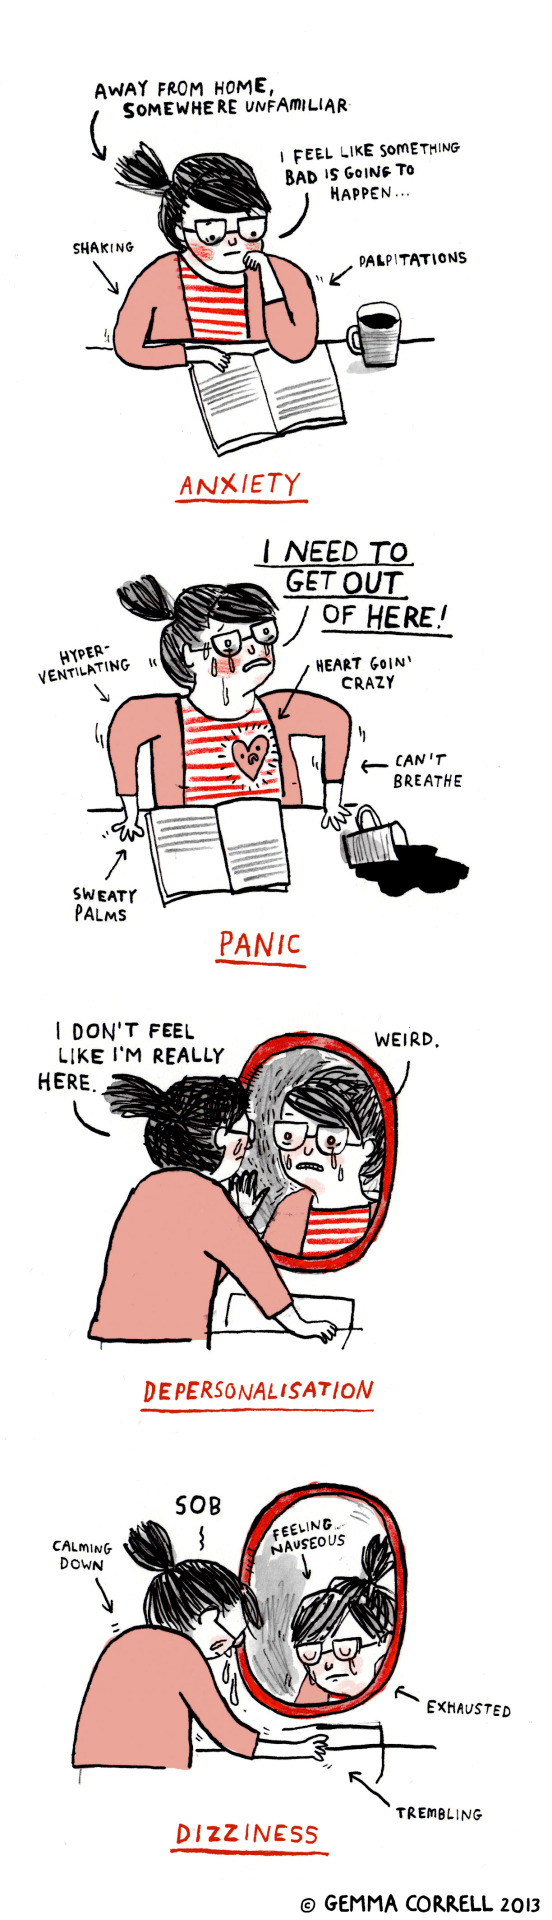 A post from Gemma Correll all about agoraphobia.